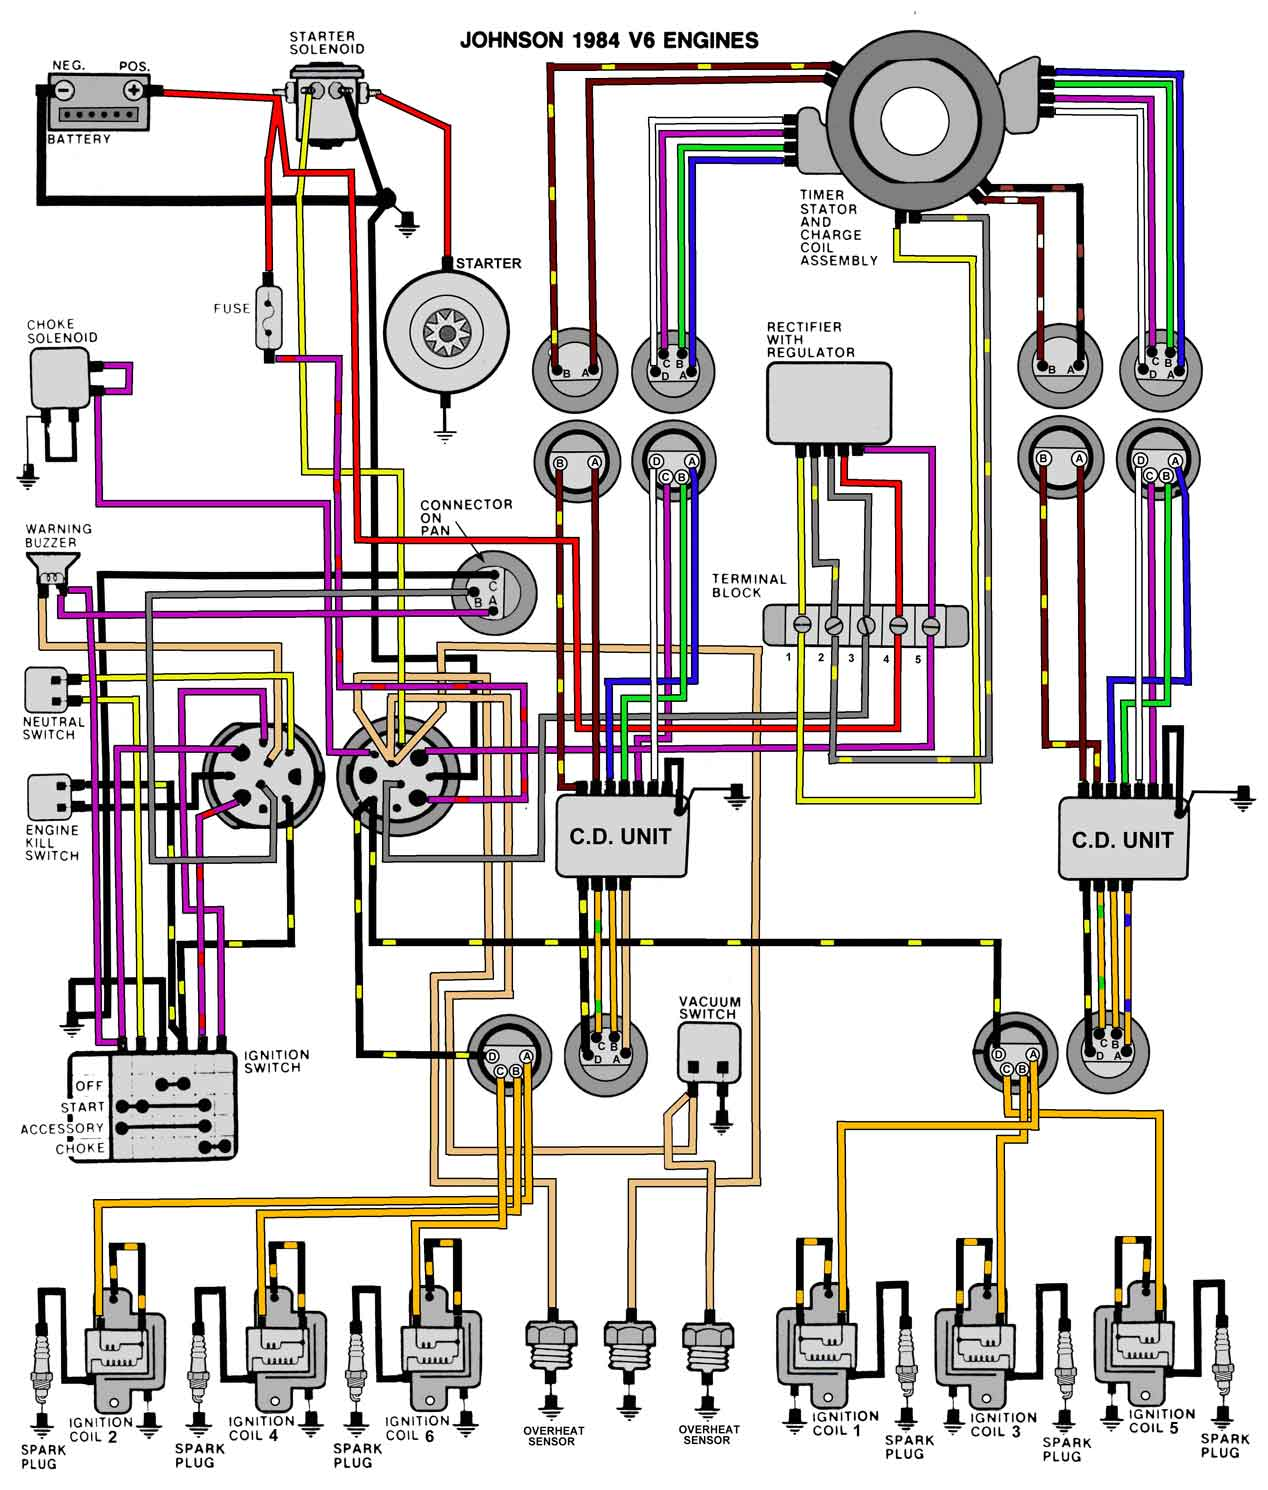 johnson 150 outboard wiring diagram another wiring diagrams u2022 rh  benpaterson co uk Mercruiser 4.3 Engine Diagram Mercruiser 5.7 Engine  Diagram